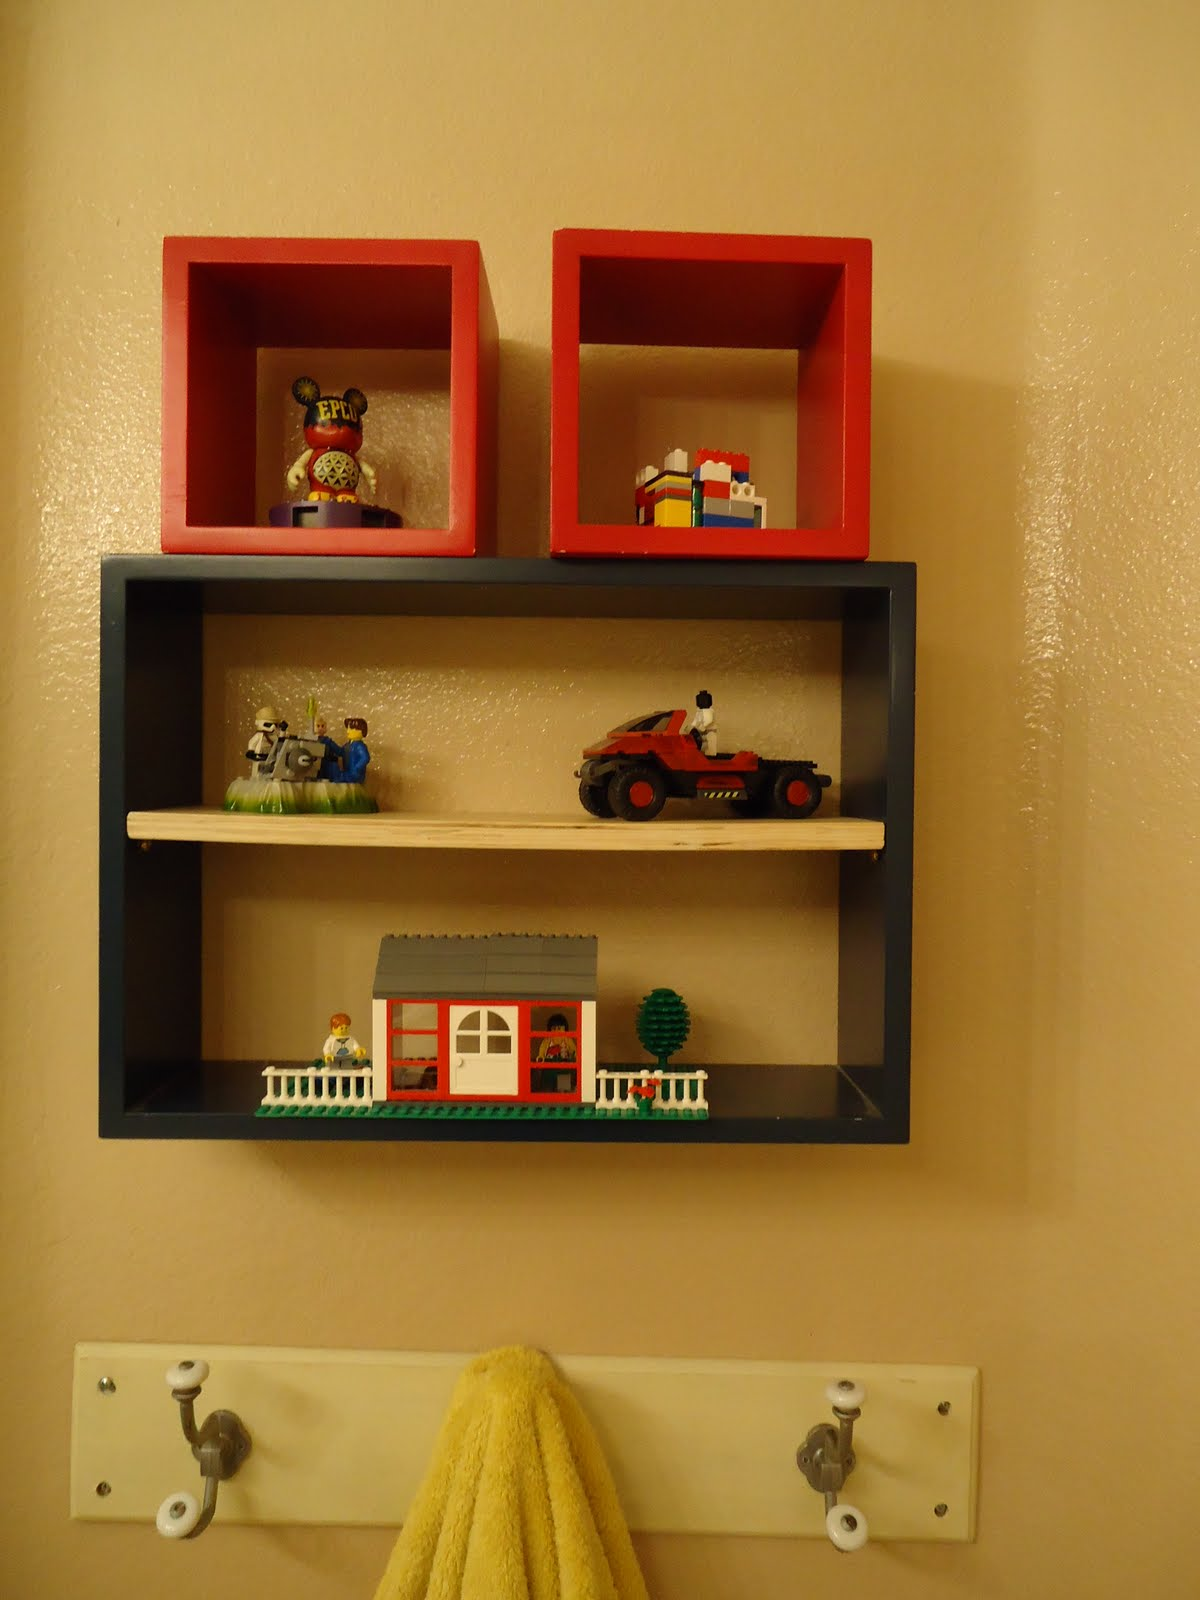 Then I Noticed Theyu0027d Match The Bathroom Perfectly    Woohoo!} Now The Boys  Have A Place To Display All The Lego Creations They Make!